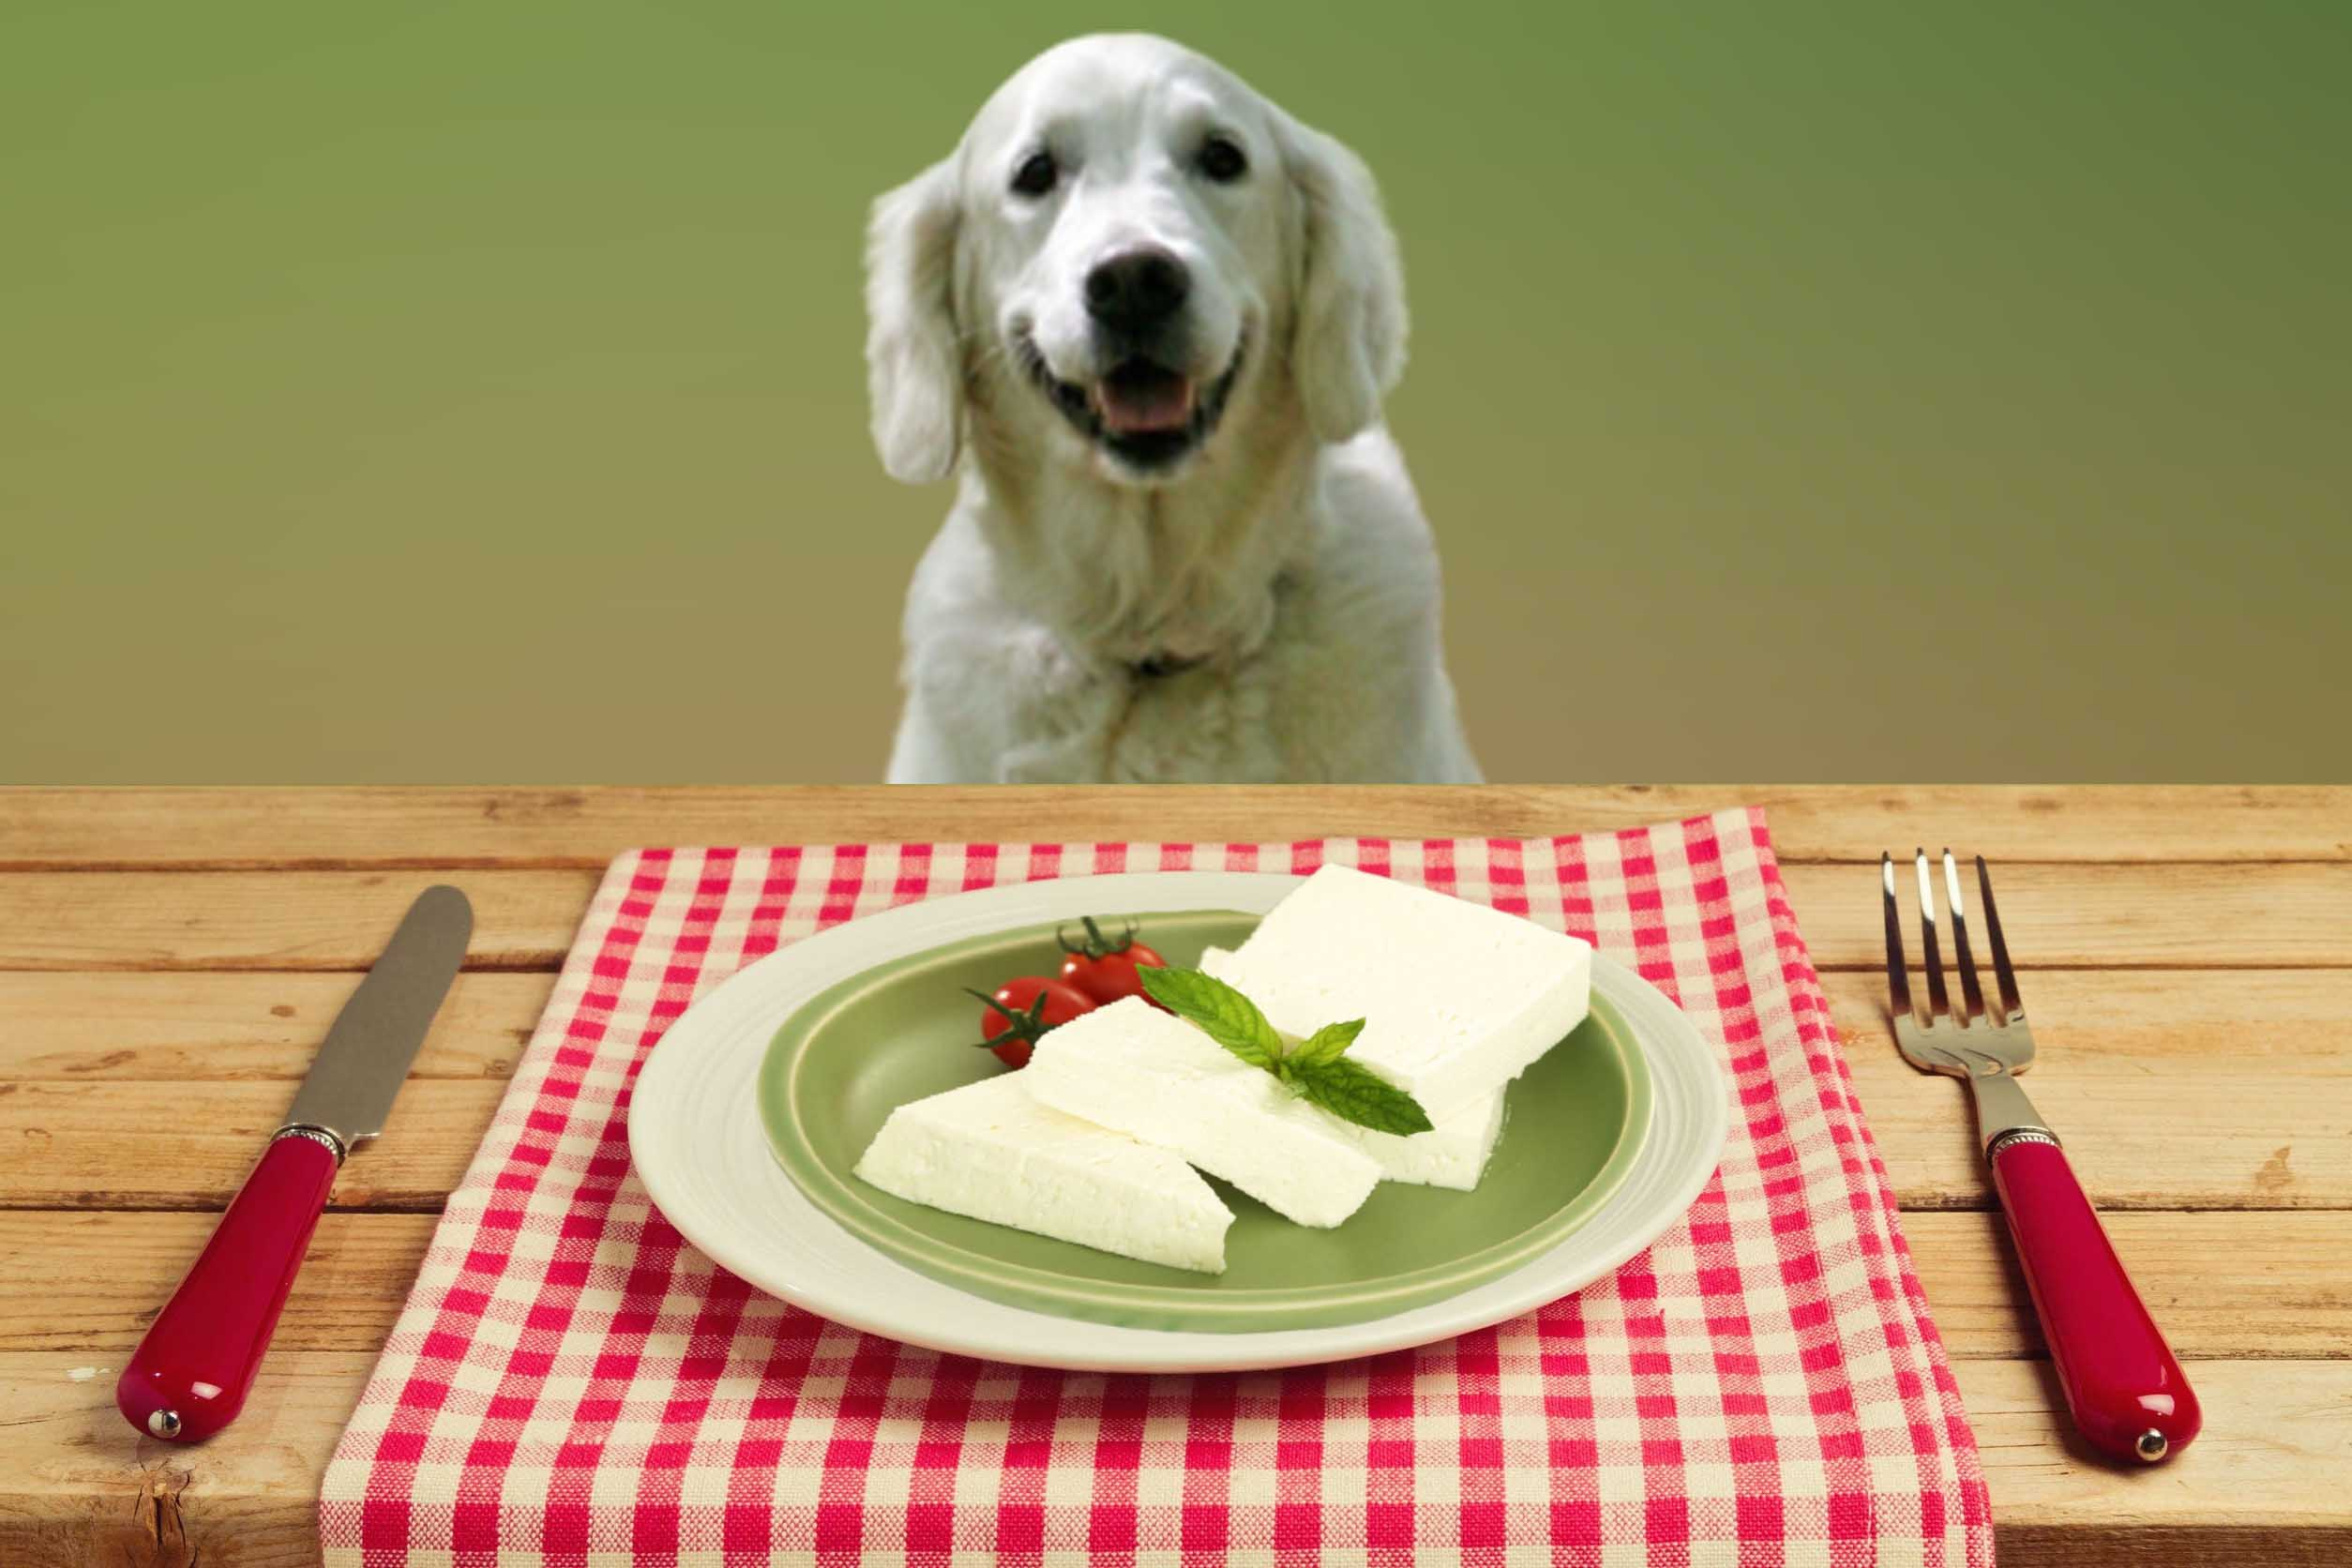 Can dogs eat cheese? Is cheese bad for dogs?